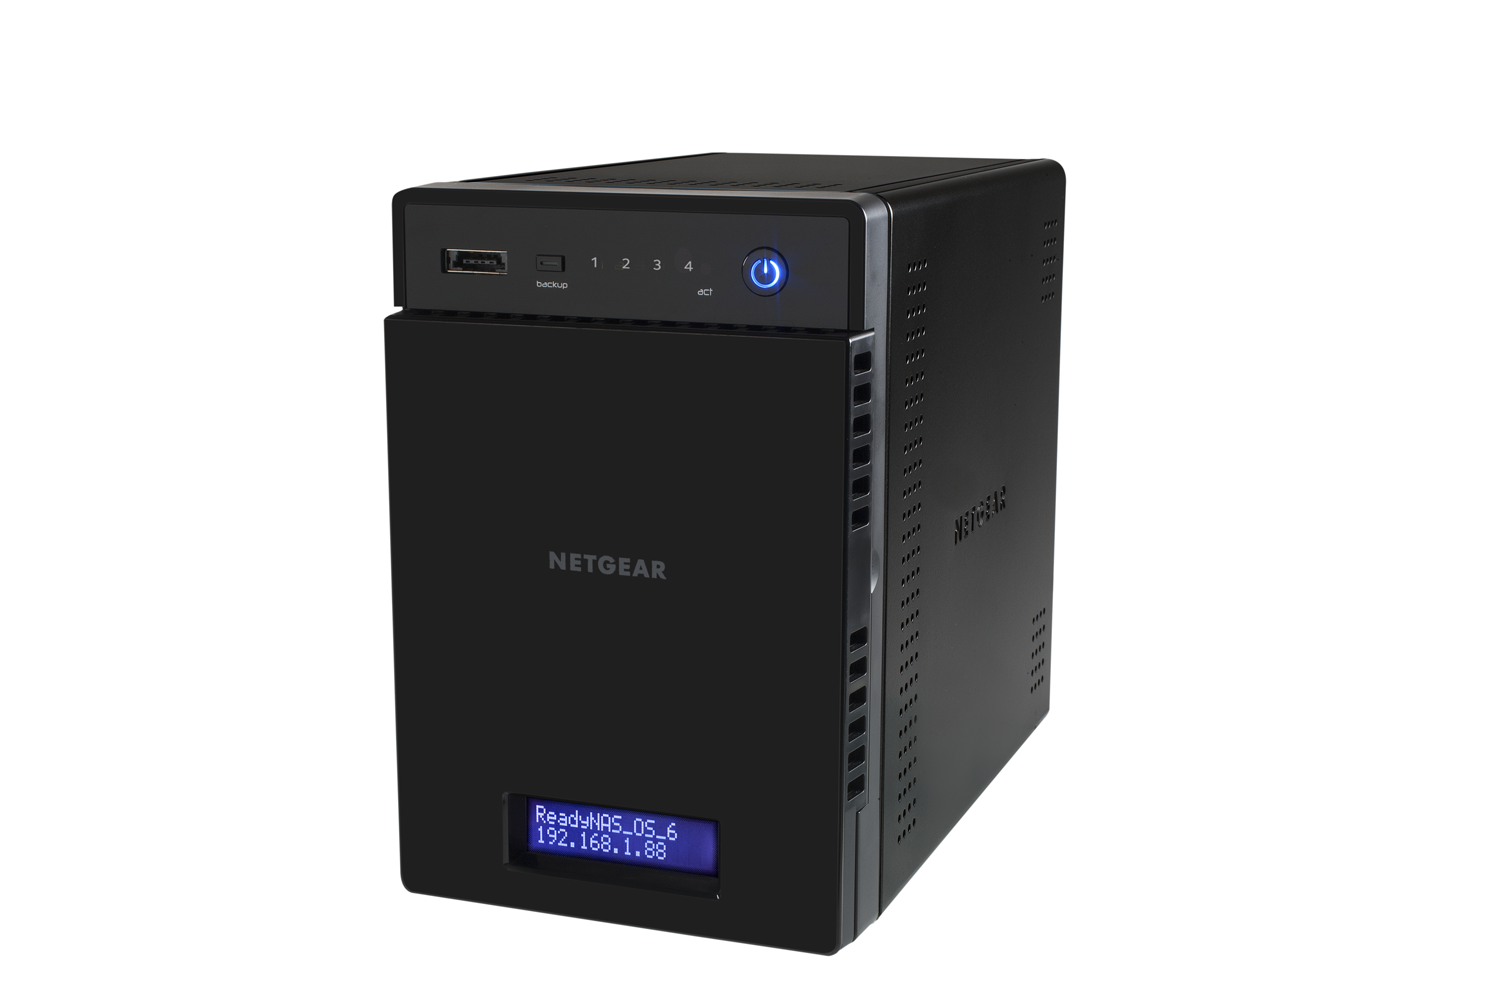 Review: Netgear ReadyNAS 314